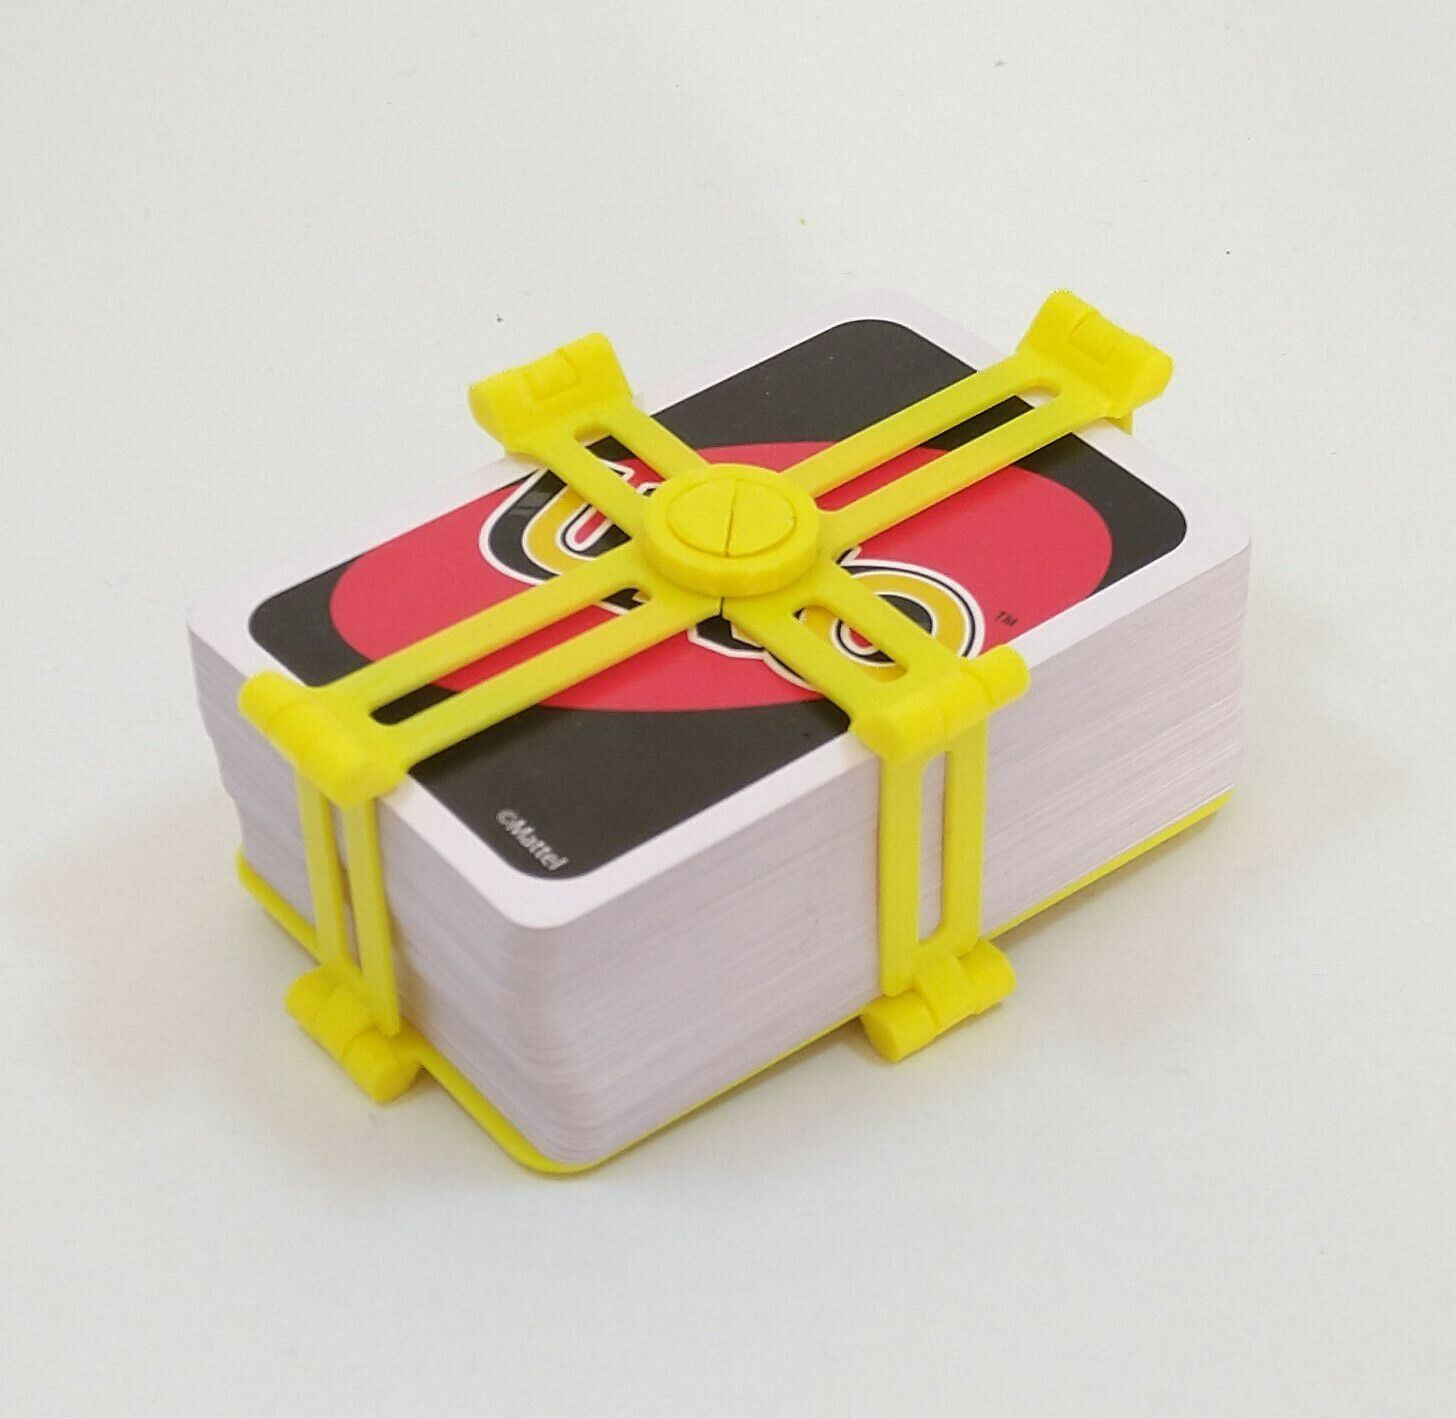 IMG_20210112_100513249.jpg Download free STL file Uno and Poker Deck Case • 3D printing object, Alex_Torres